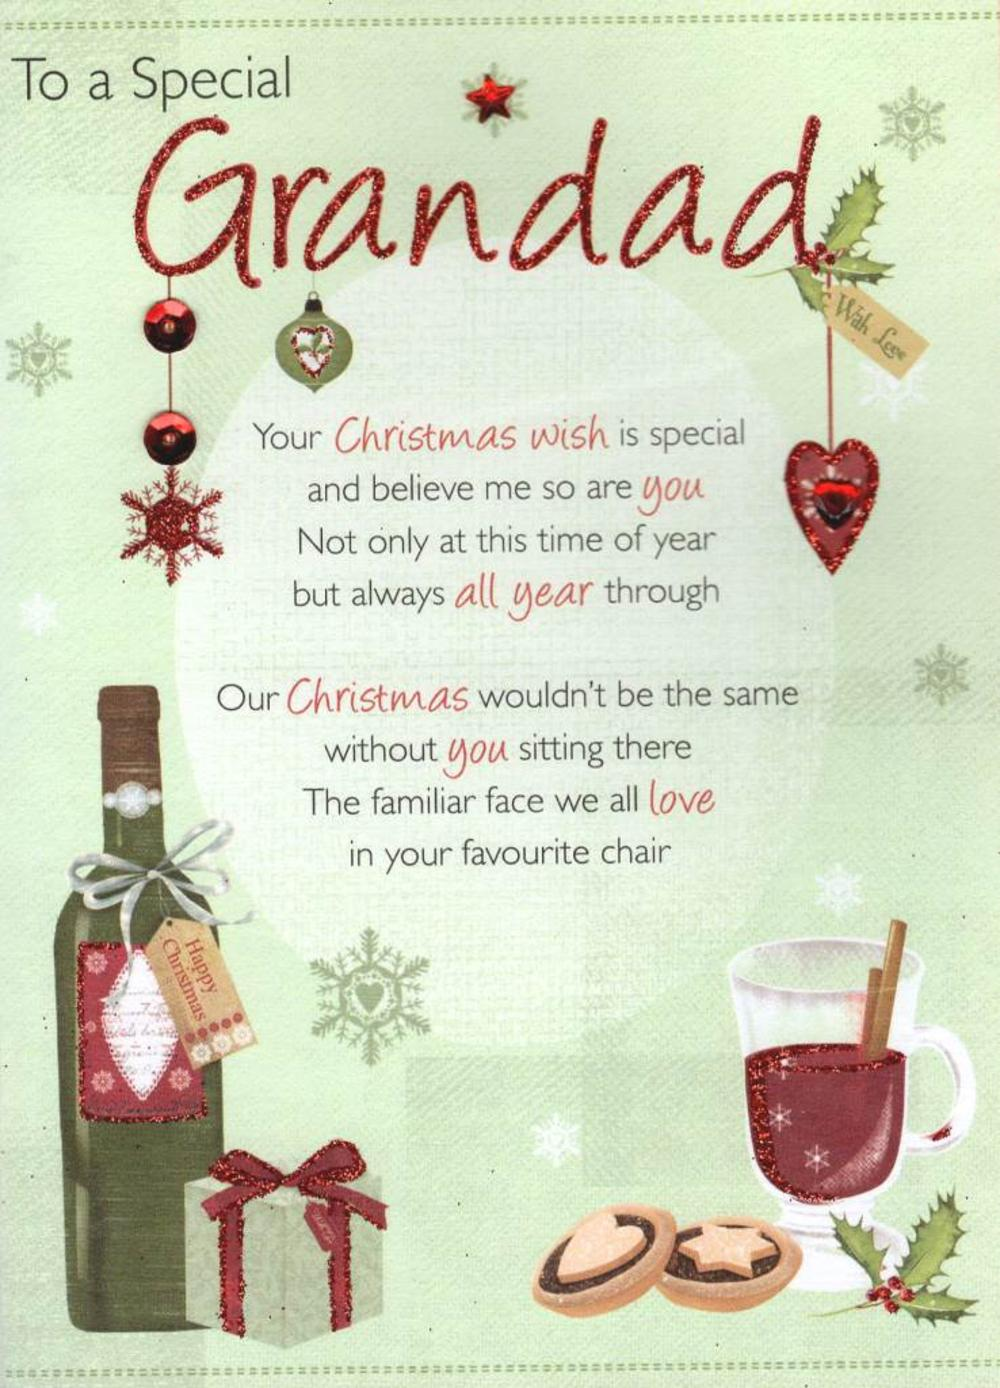 To A Special Grandad Christmas Greeting Card